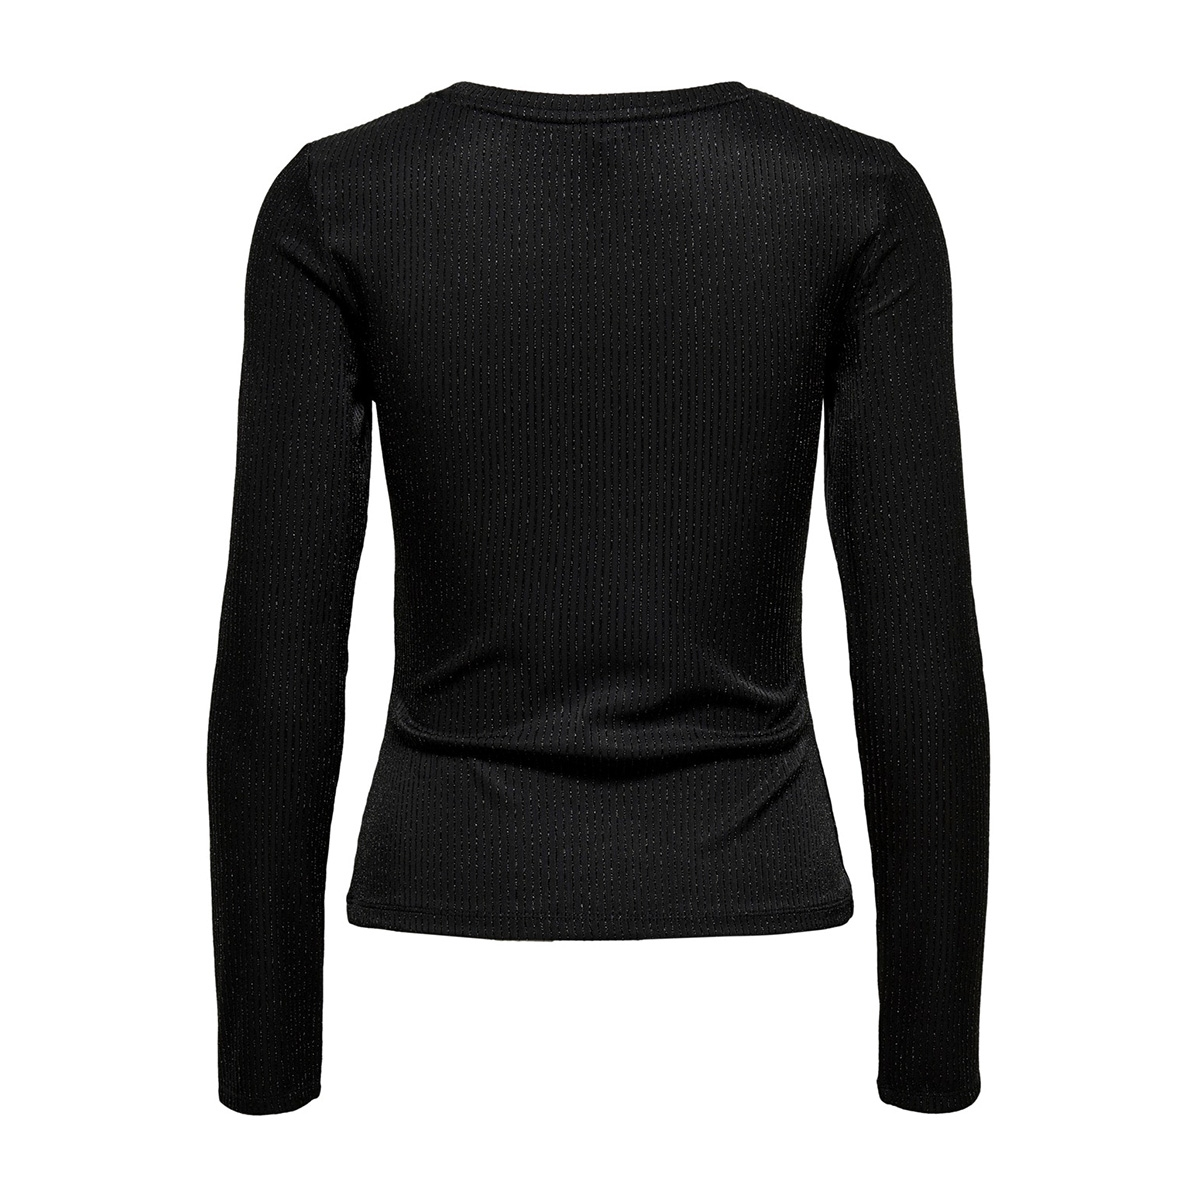 onlcosmo l/s glitter top jrs 15189750 only t-shirt black